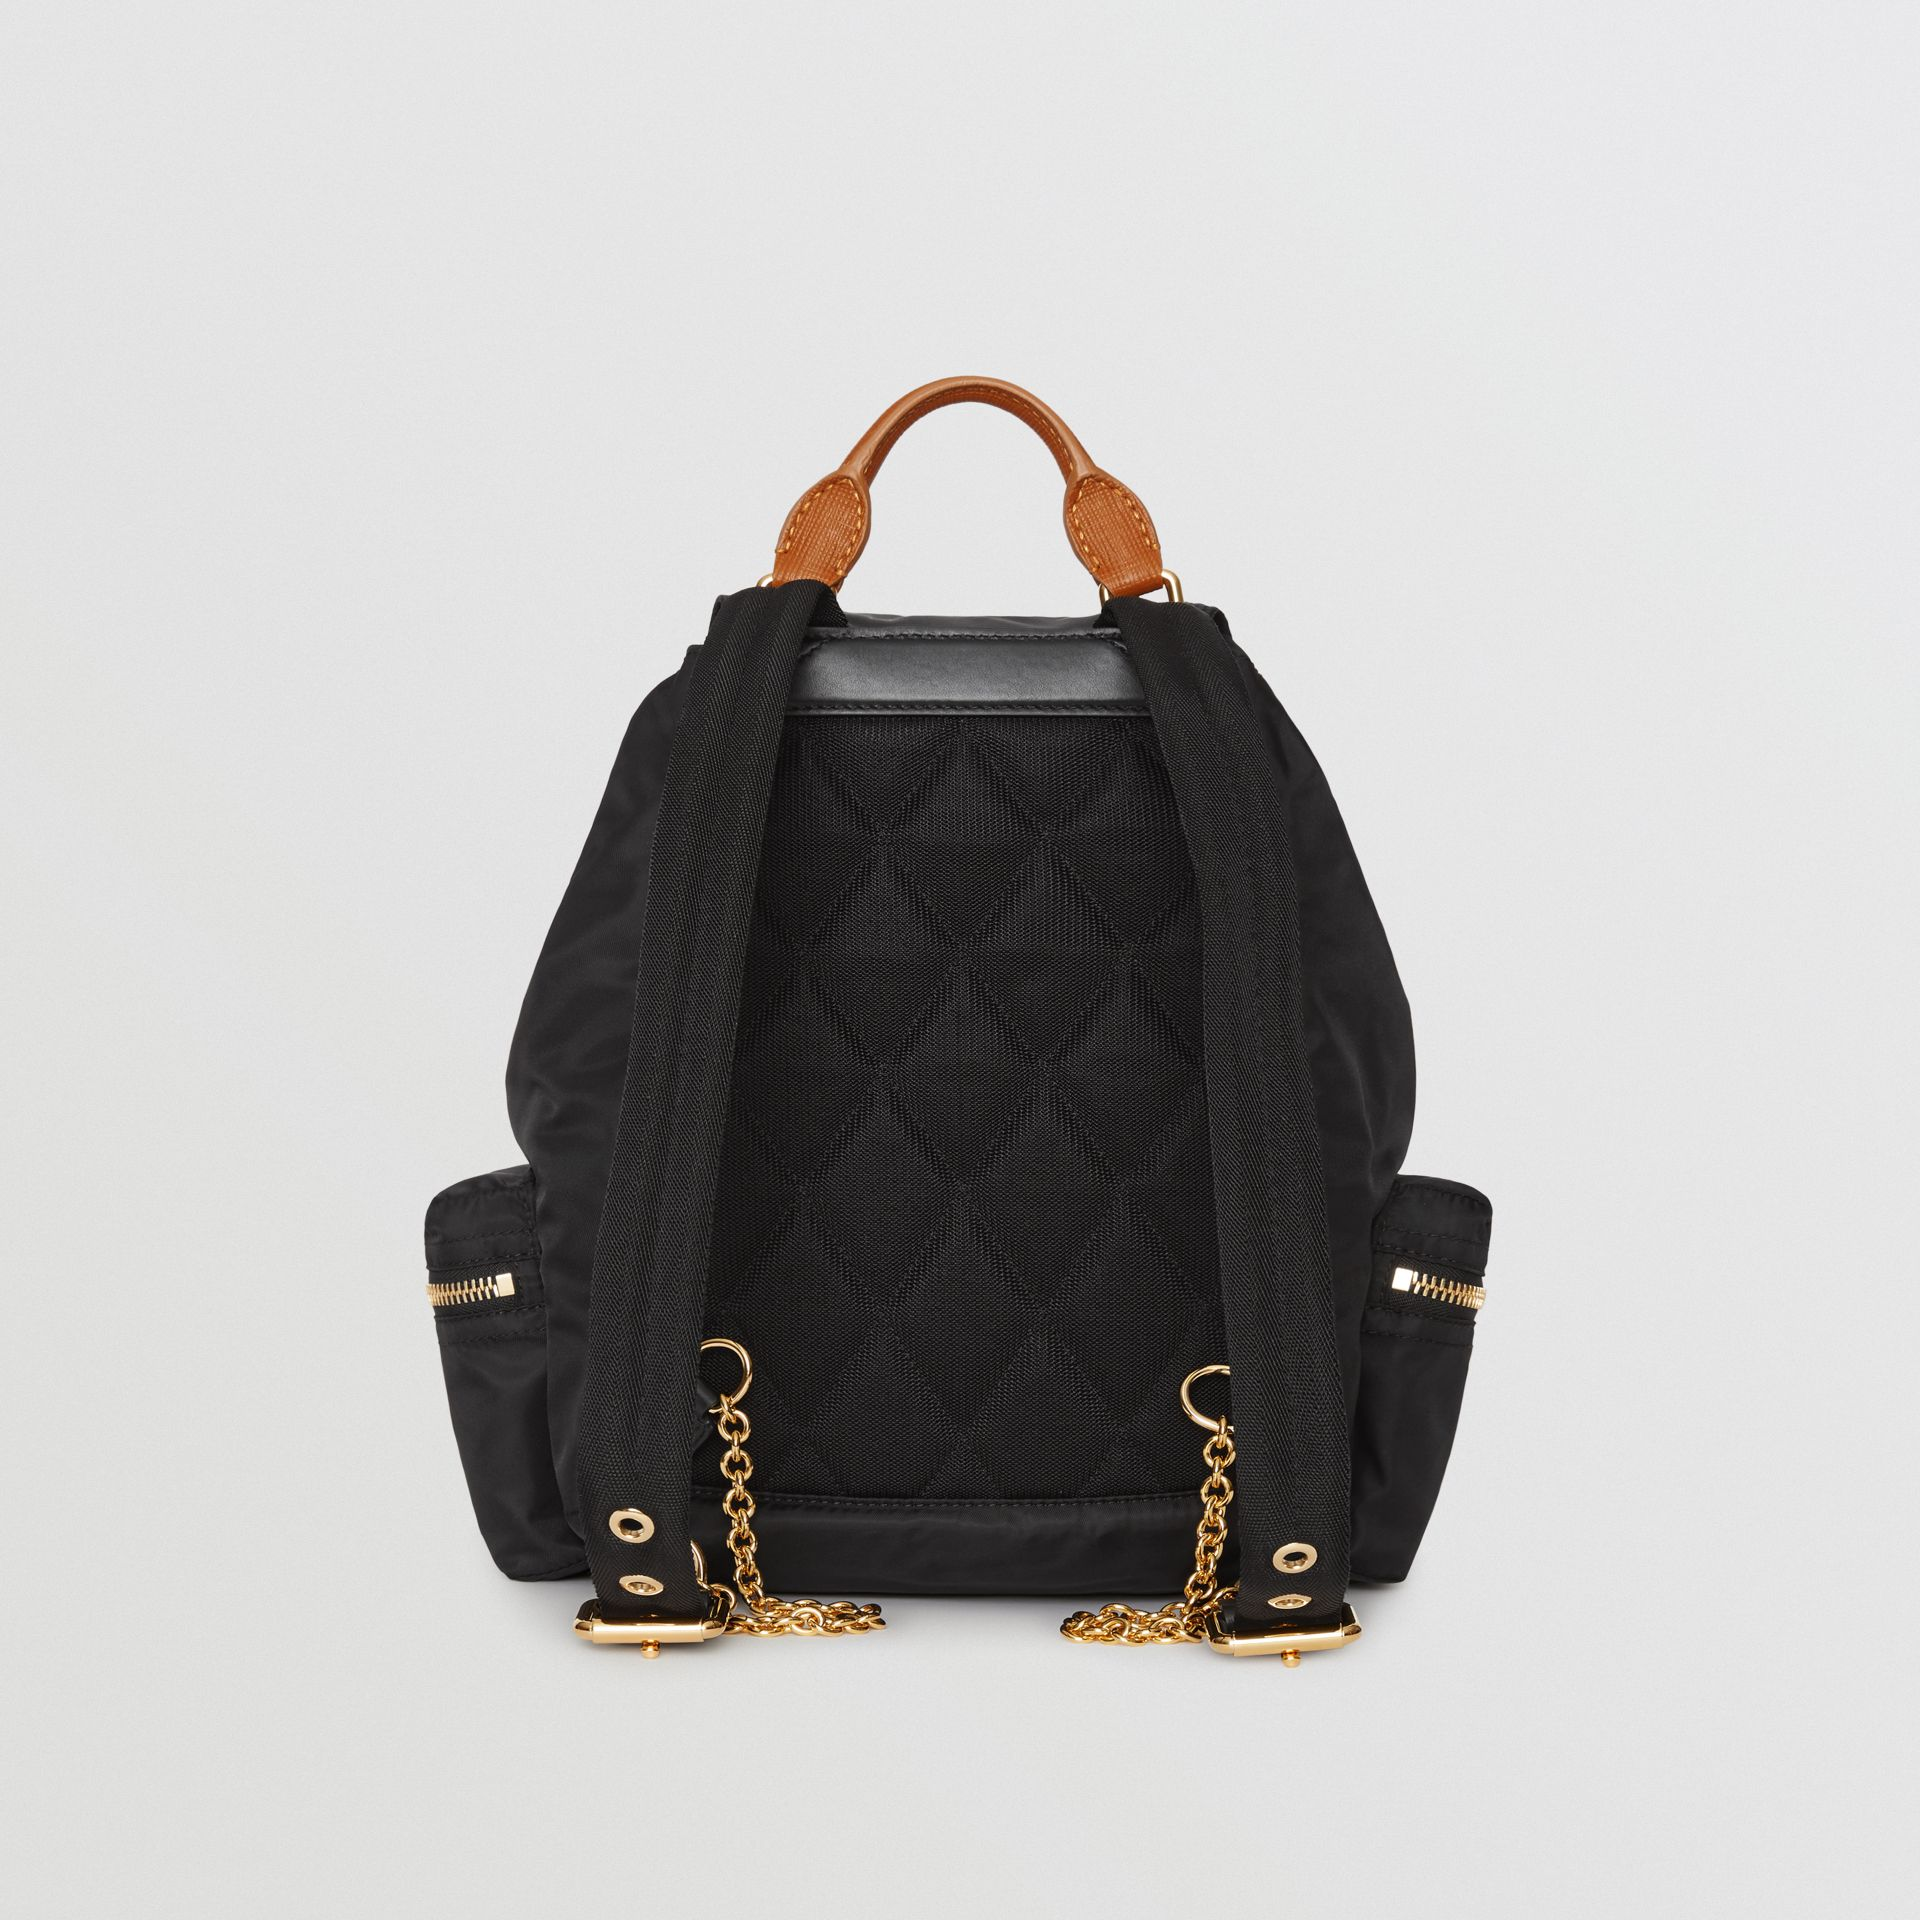 Sac The Rucksack moyen en nylon technique et cuir (Noir) - Femme | Burberry Canada - photo de la galerie 6